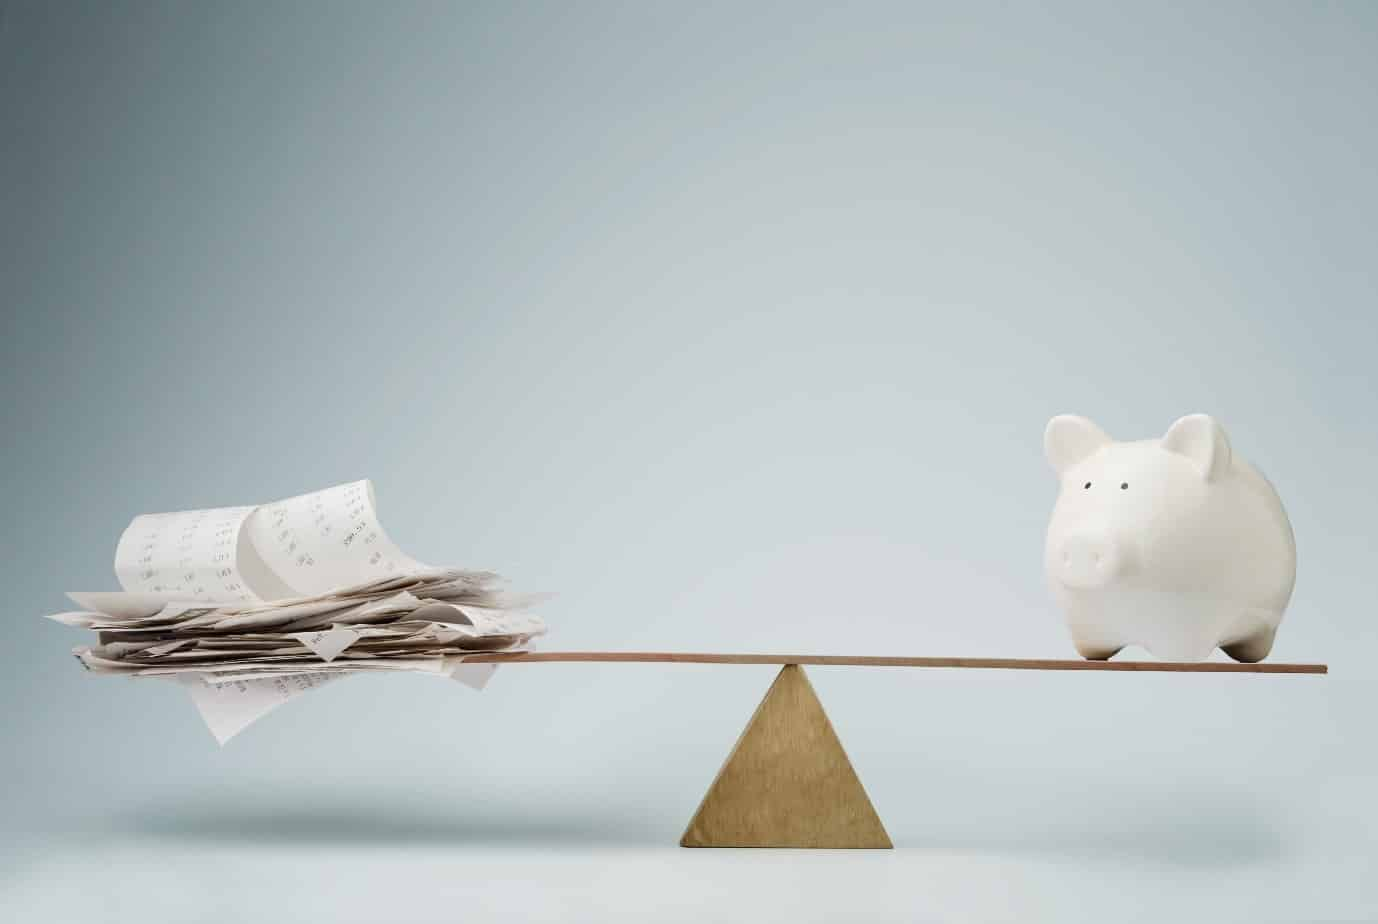 Balancing Cost of Private Medical Insurance with Value